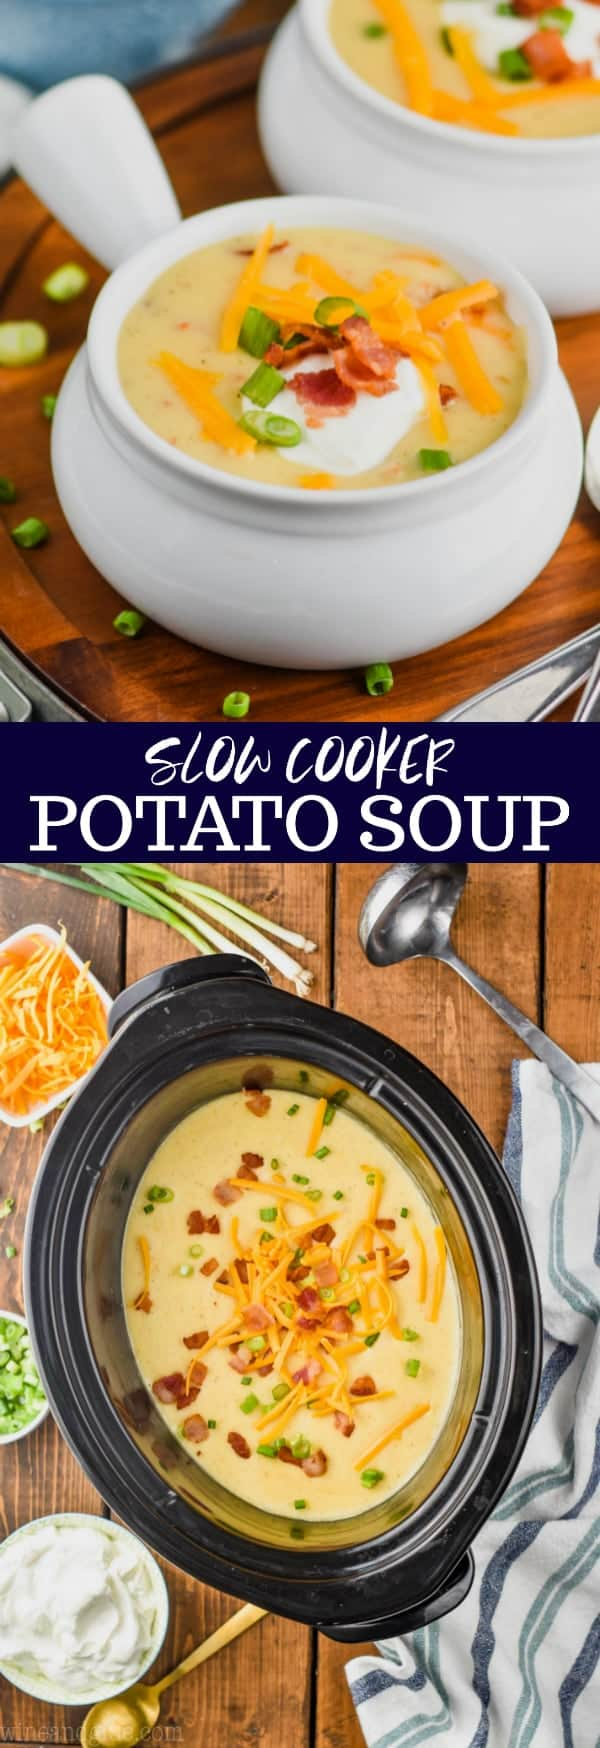 collage of slow cooker potato soup recipe photos